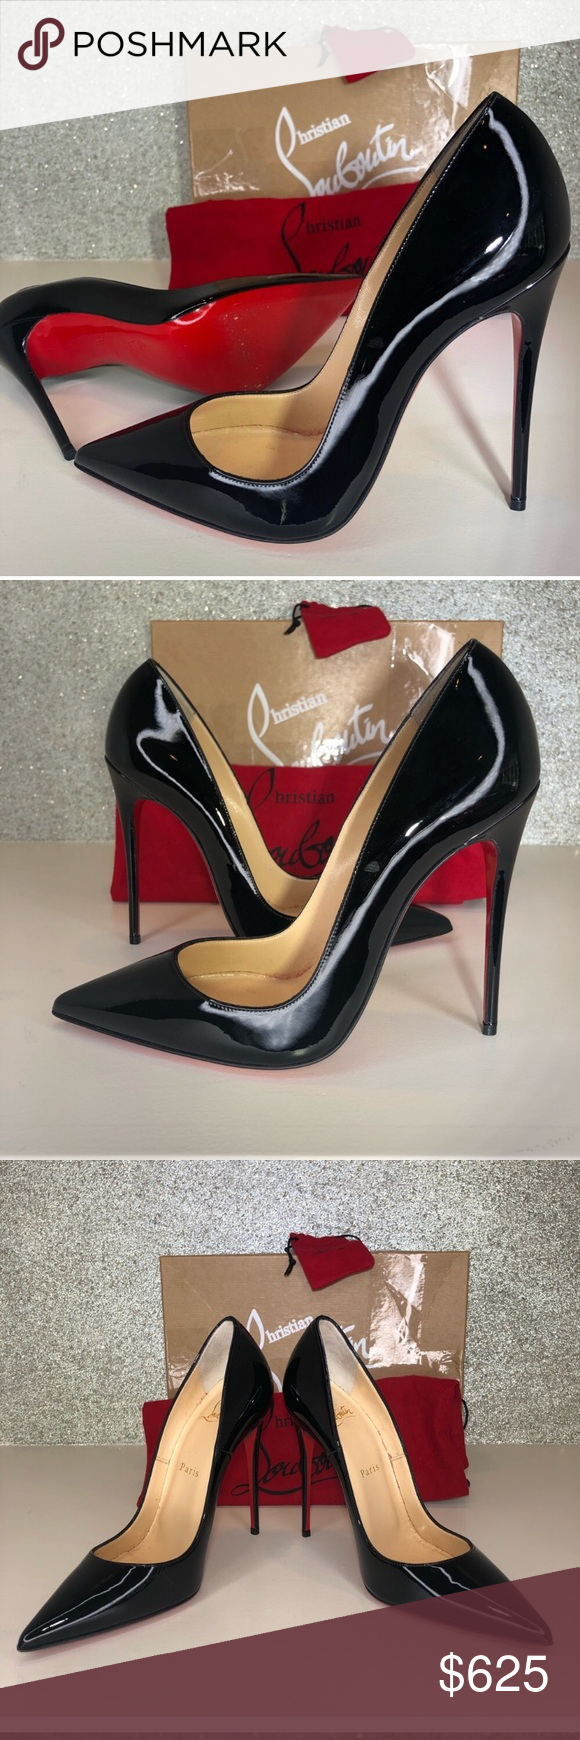 28787f0ee2e Louboutin So Kate black patent leather pumps 37.5 Excellent ...